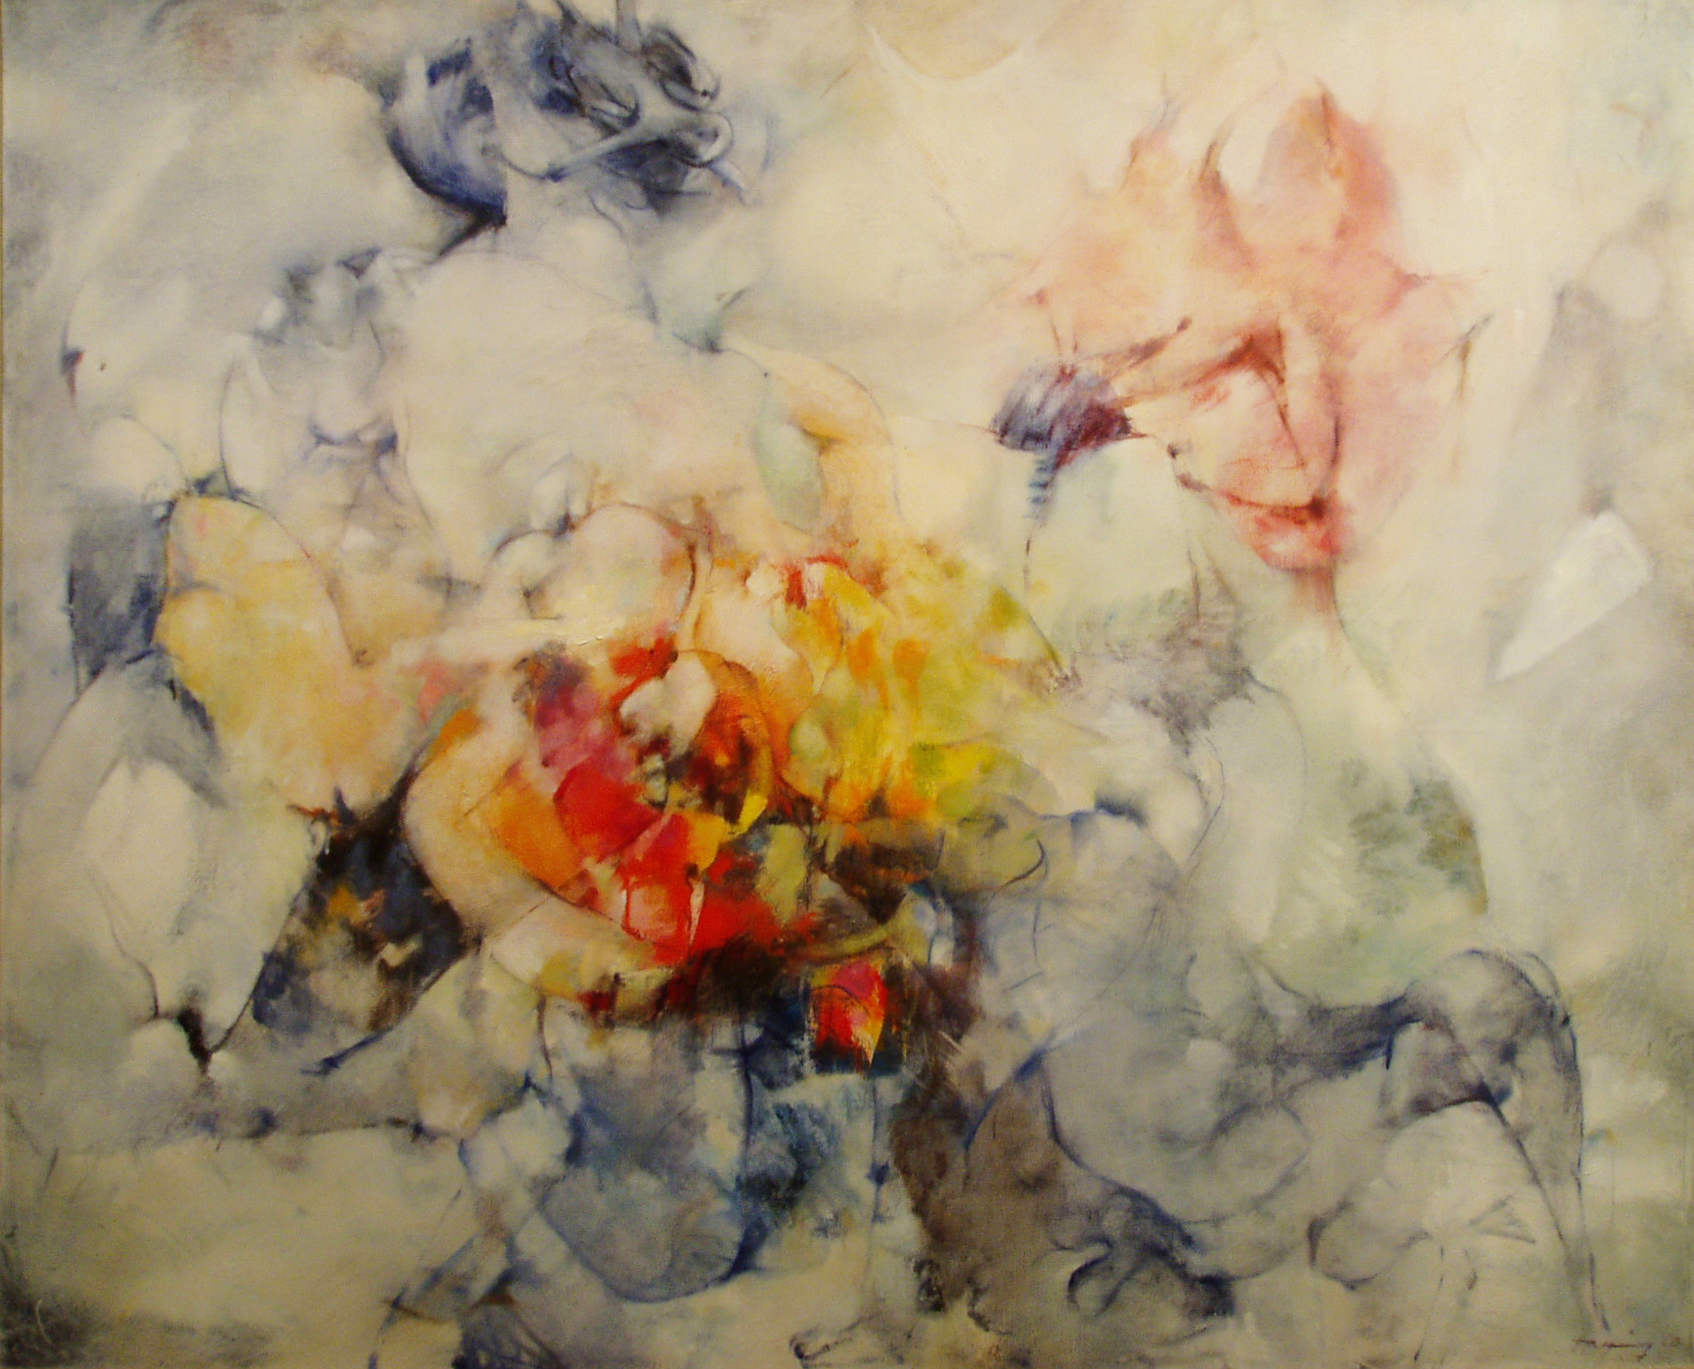 Dorothea Tanning,  Ignoti Nulla Cupido , 1960, Oil on canvas, 32 x 39 inches (81.3 x 99.1 cm)